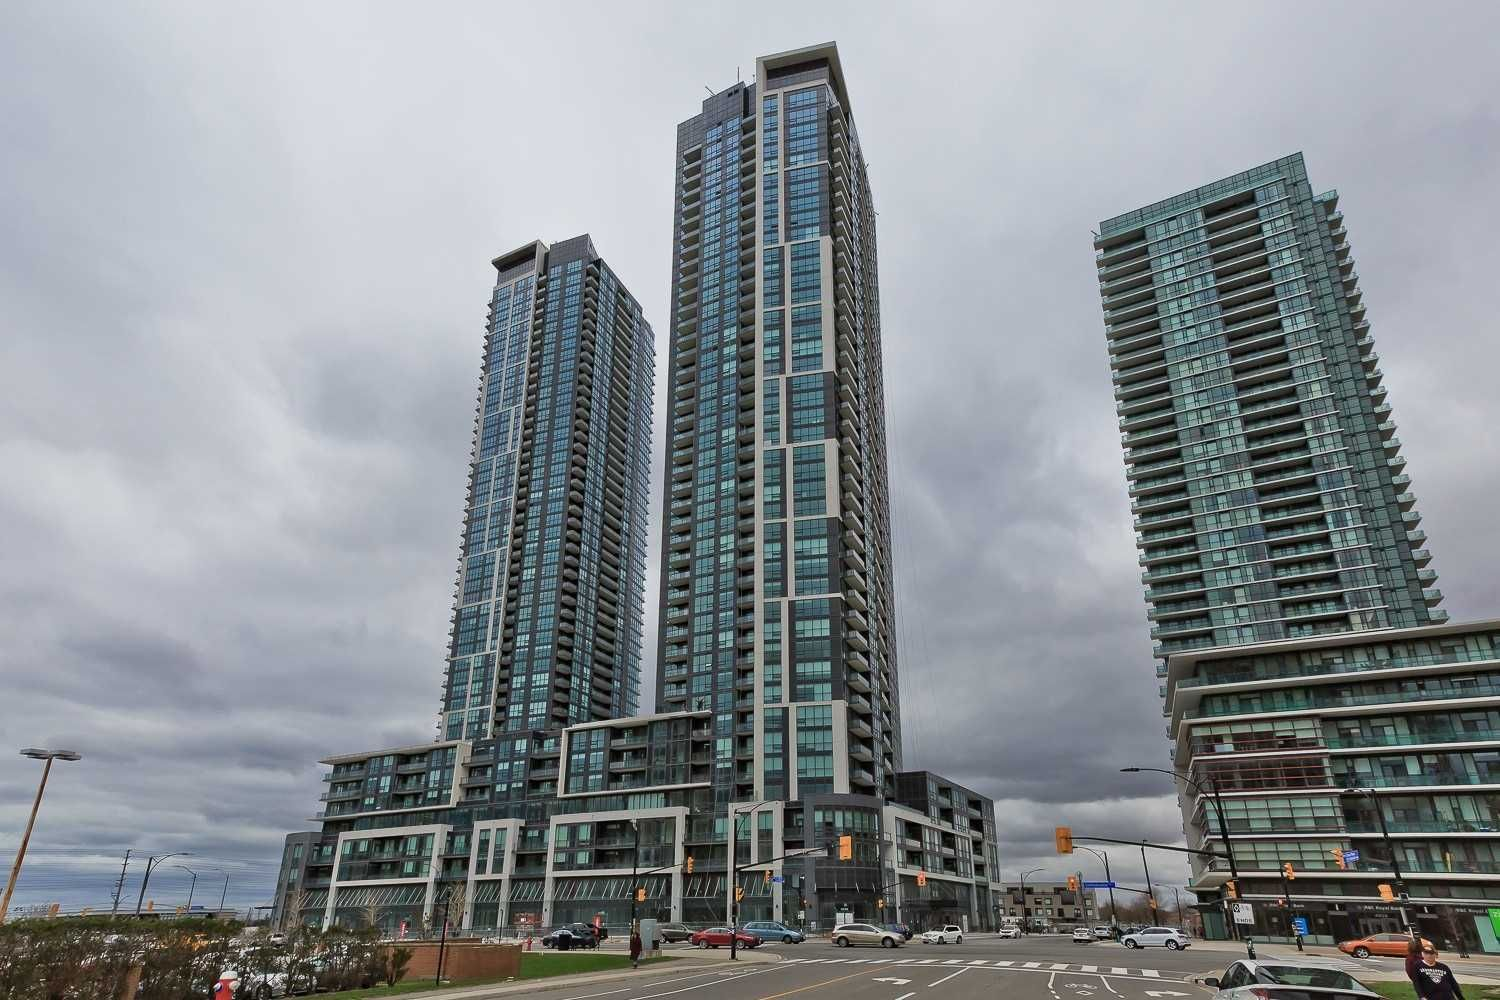 Main Photo: 3603 510 Curran Place in Mississauga: City Centre Condo for sale : MLS®# W4376318